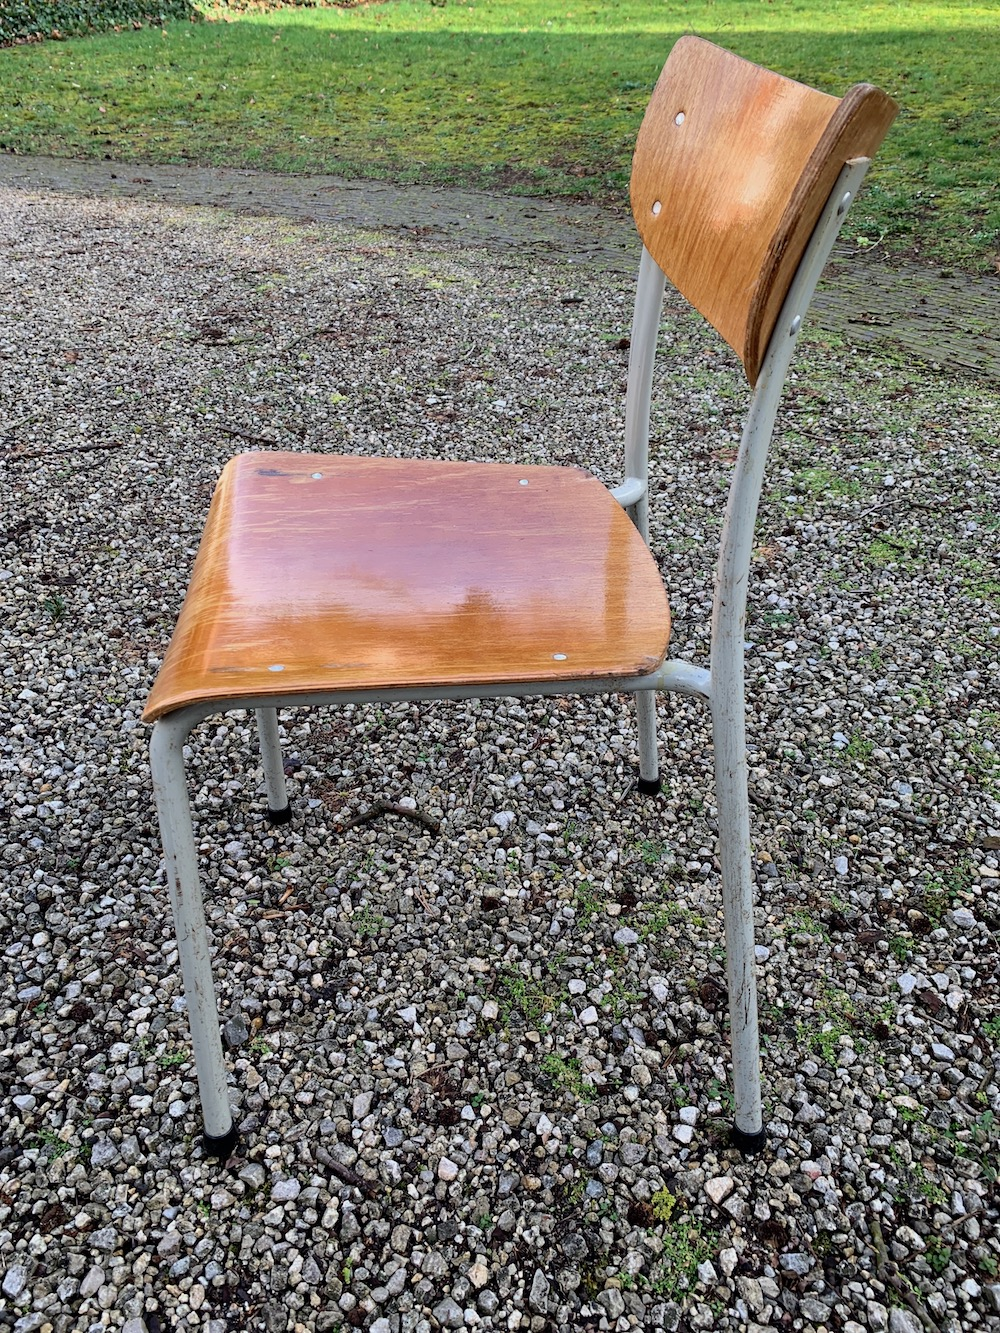 industrial chairs, vintage chairs, school chairs, chaises d'école, chaises vintage, chaises bois